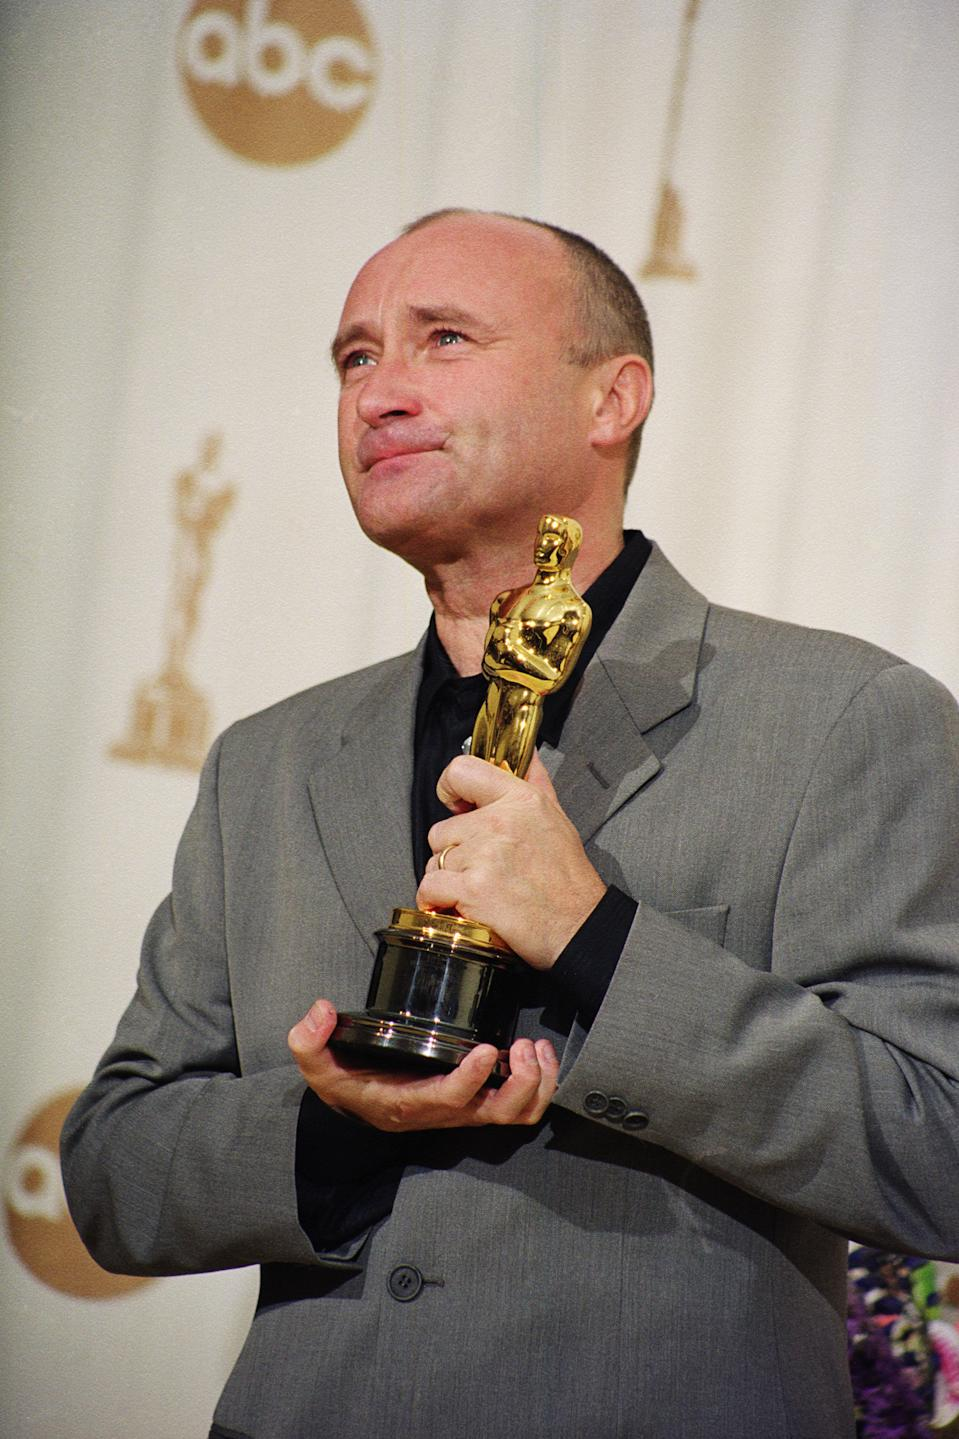 """Phil Collins poses with his 2000 Academy Award for Best Original Song, """"You'll Be in My Heart,"""" from the movie """"Tarzan."""" (Photo by Steve Starr/CORBIS/Corbis via Getty Images)"""